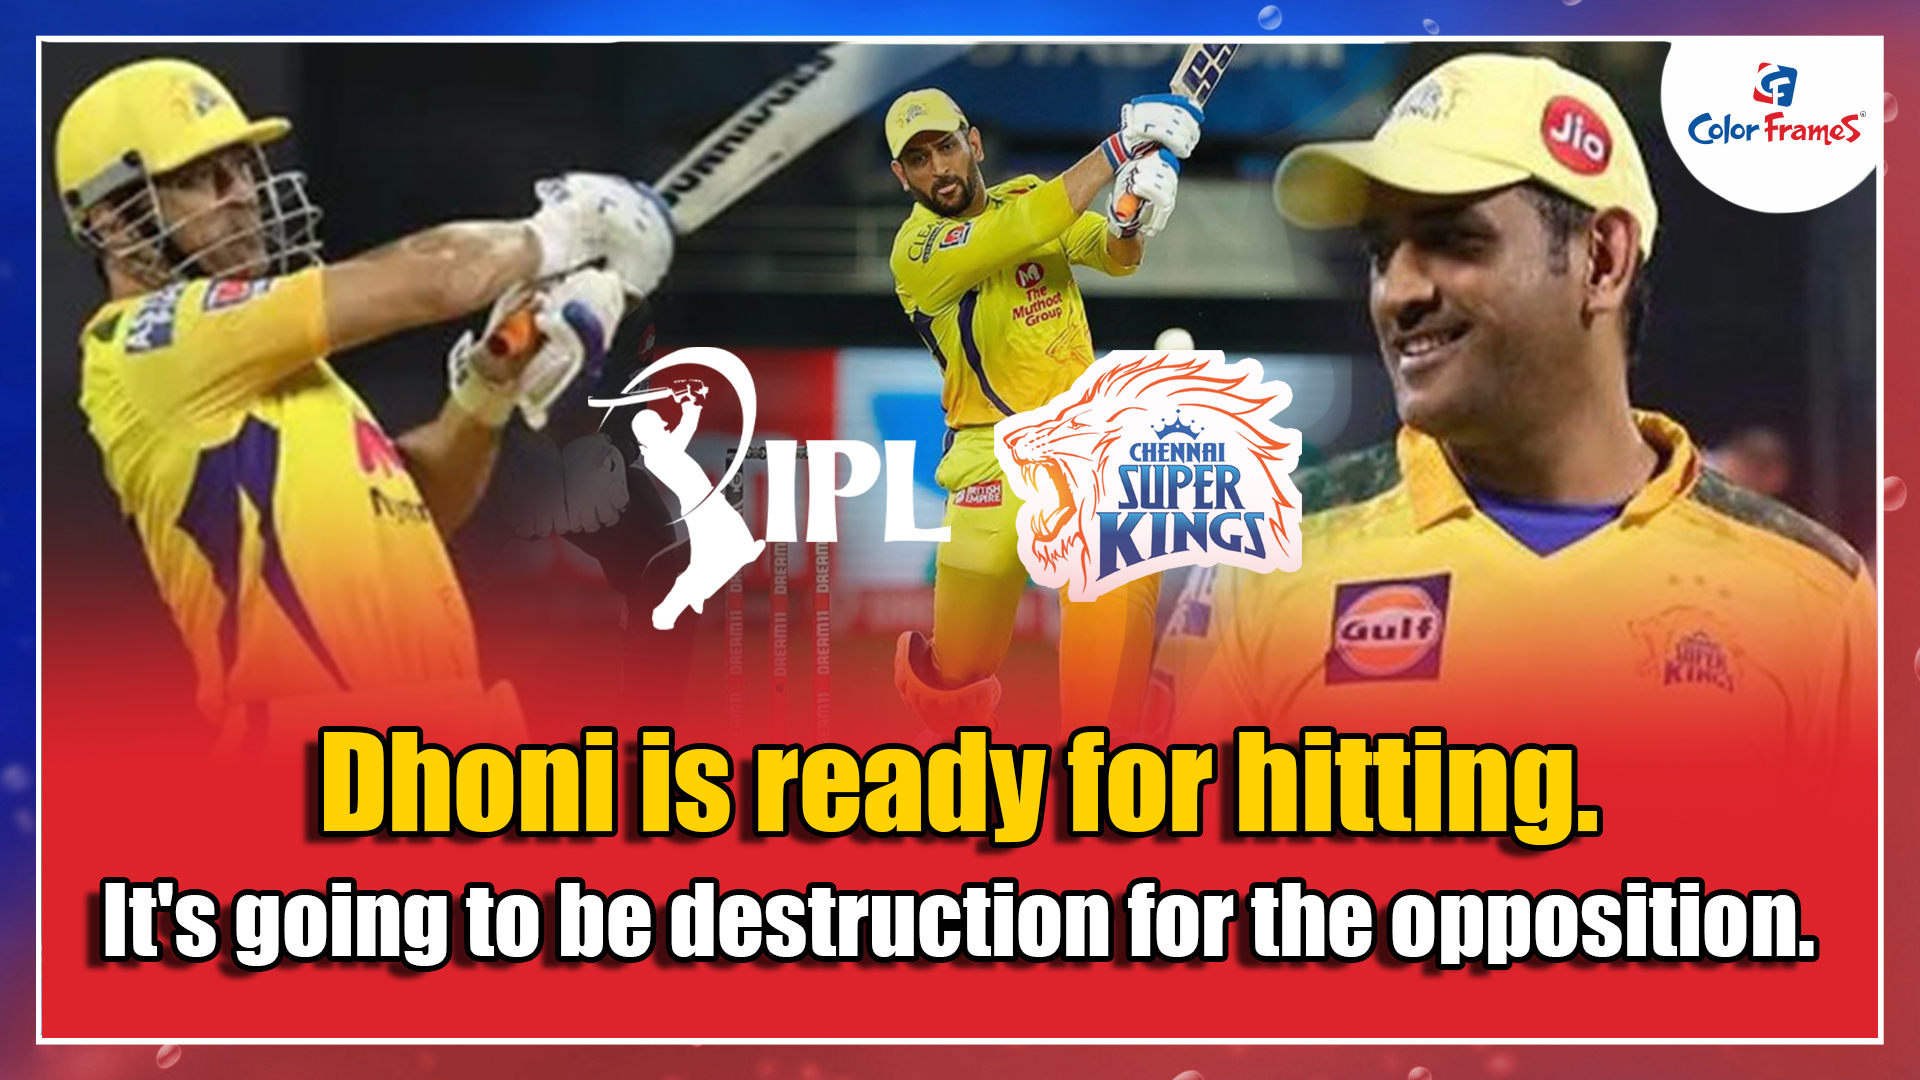 Dhoni is ready for hitting. It's going to be destruction for the opposition.